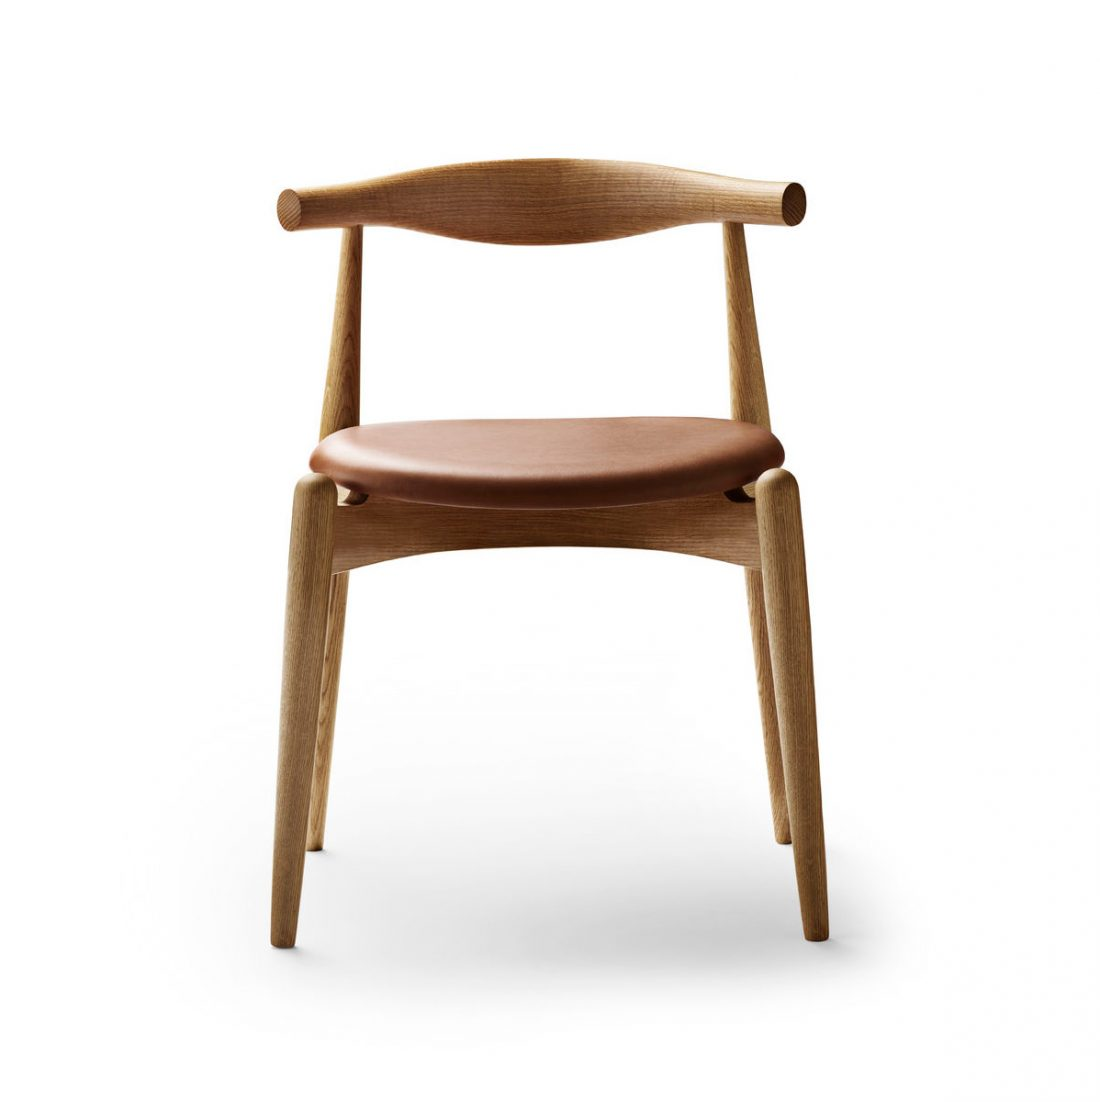 Front view of a Carl Hanson & Son CH20 Elbow chair